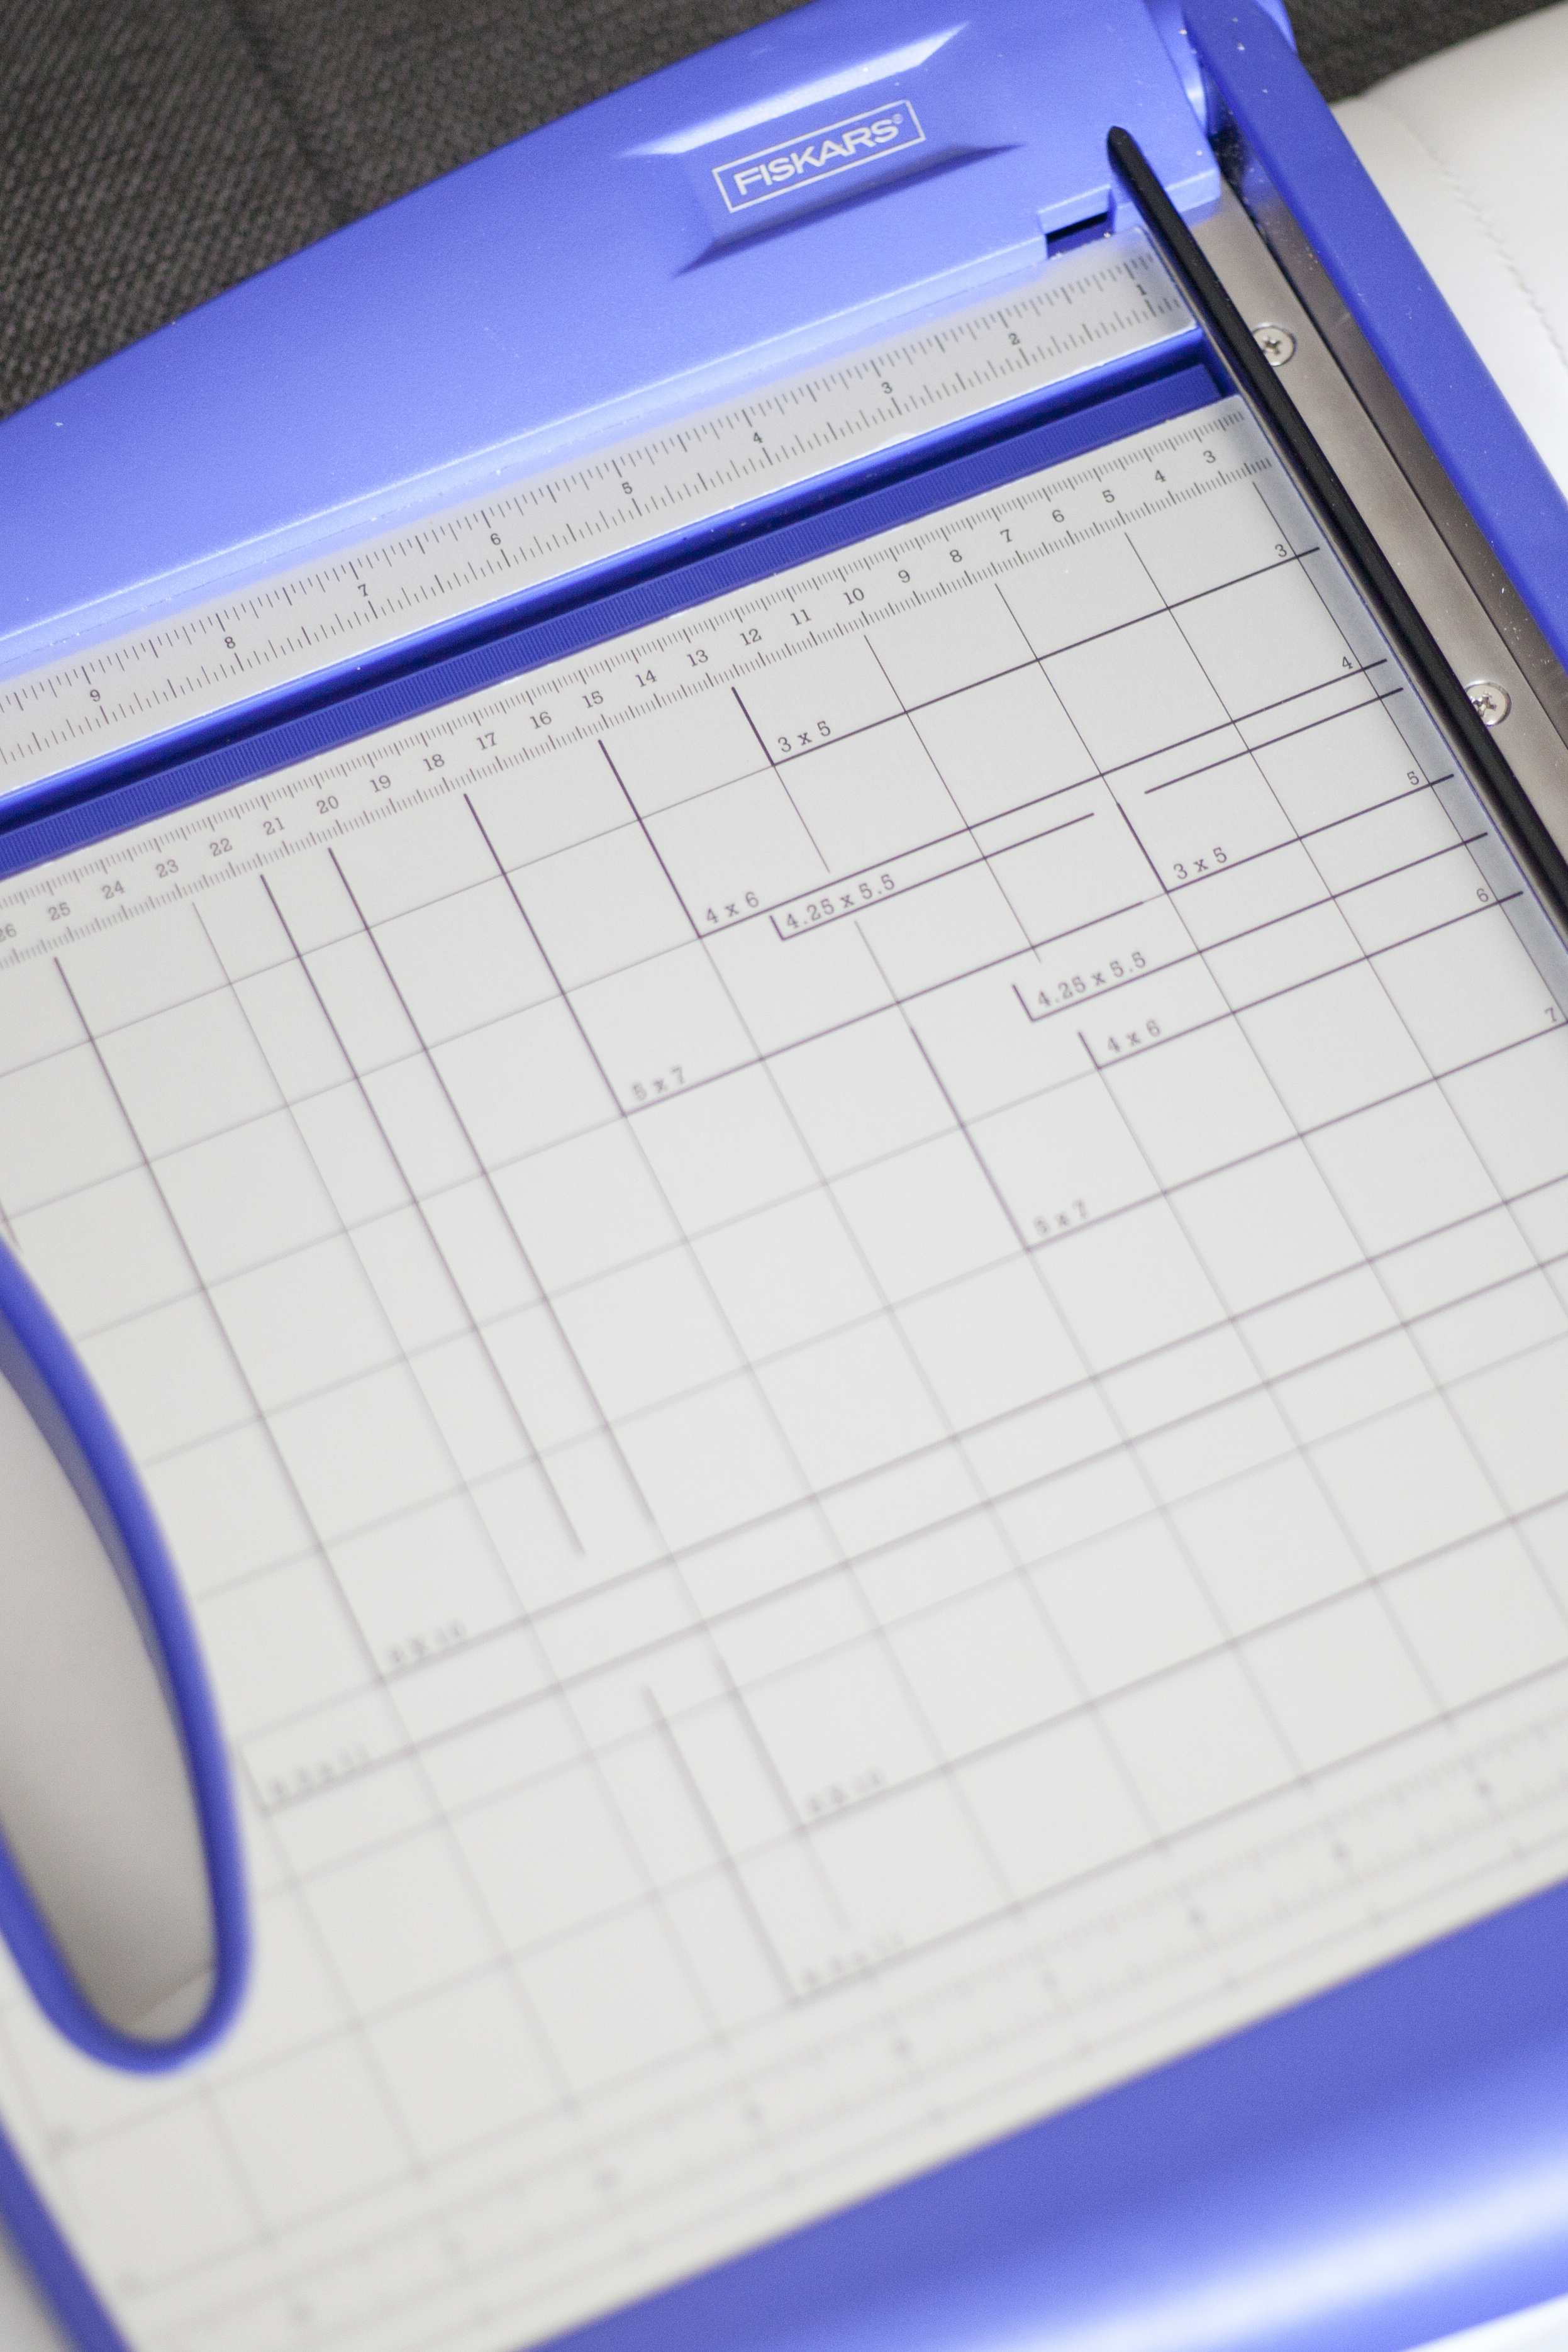 Paper cutter (you could also just use a ruler and scissors)